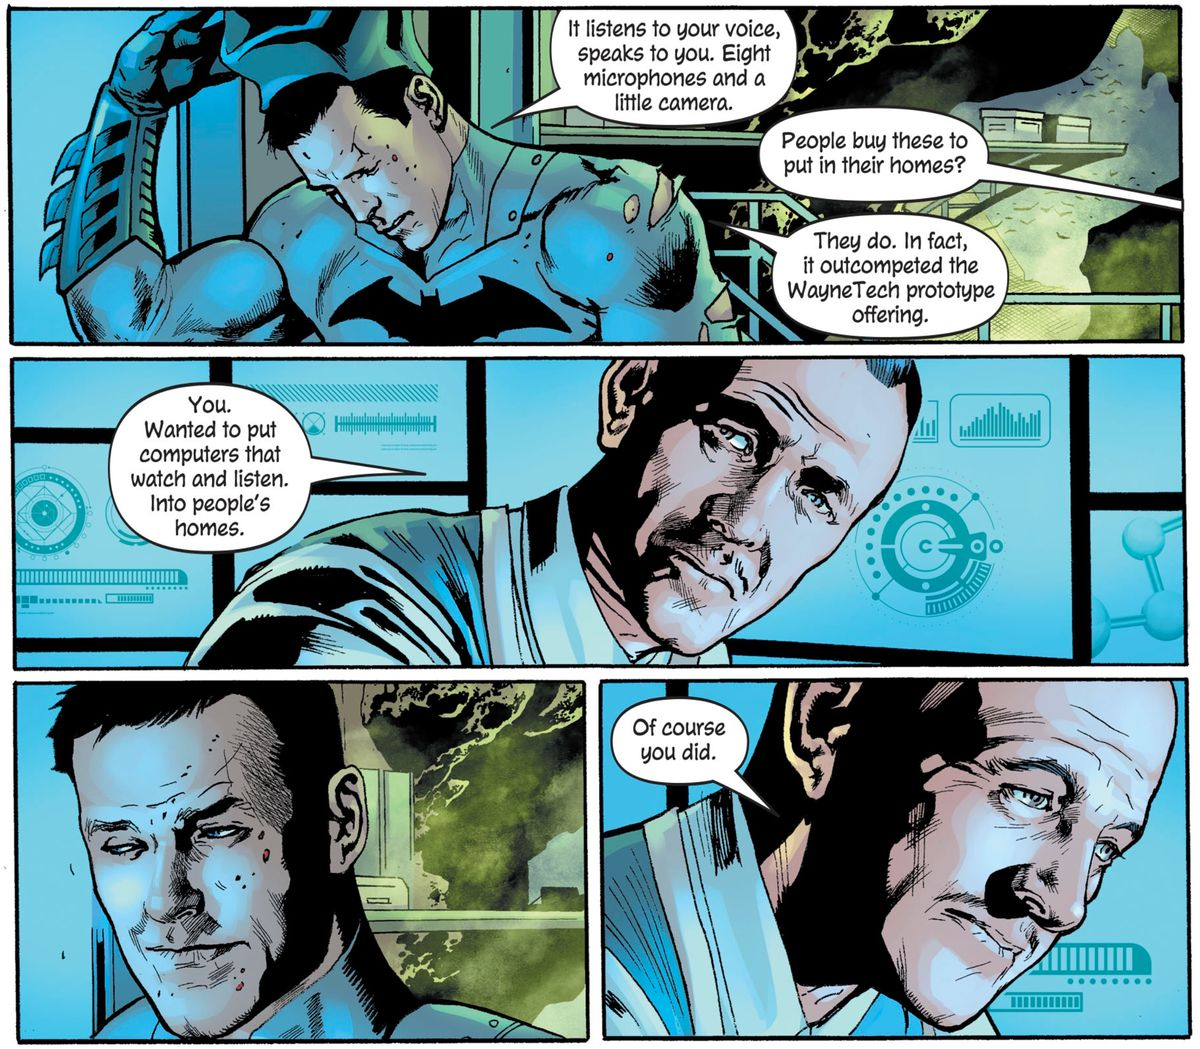 """""""You. Wanted to put computers that watch and listen. Into people's homes,"""" says Alfred. Bruce is silent but for a wry smile. """"Of course you did,"""" Alfred sighs, in The Batman's Grave #3, DC Comics (2019)."""